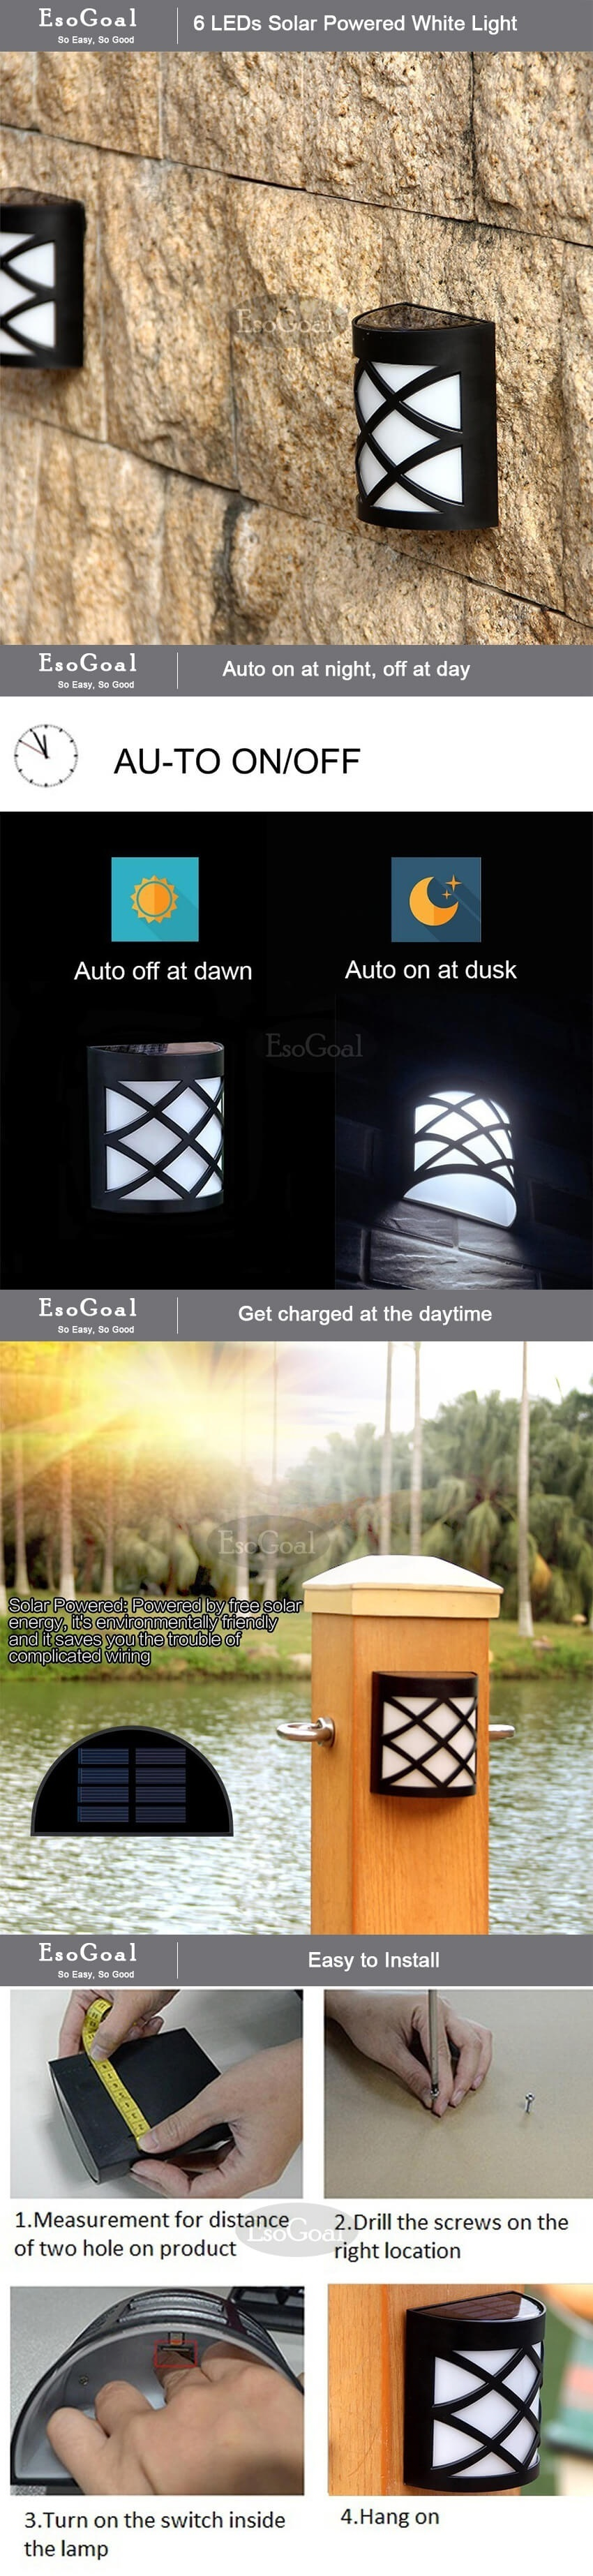 Esogoal solar fence post lights 6 led waterproof lighting outdoor specifications of esogoal solar fence post lights 6 led waterproof lighting outdoor wall mount light lamp for garden fence patio deck yard driveway aloadofball Images